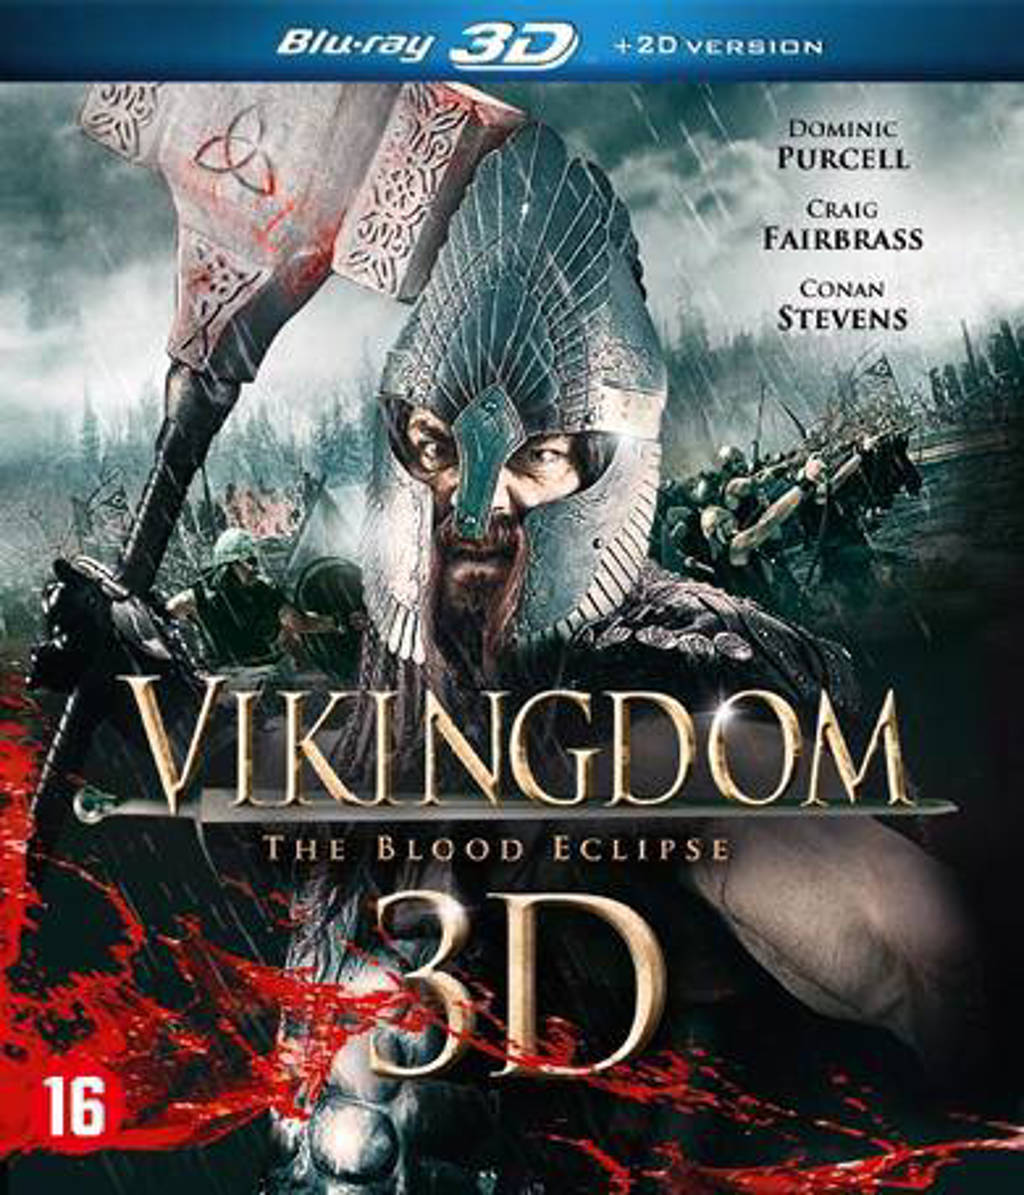 Vikingdom (3D) (Blu-ray)